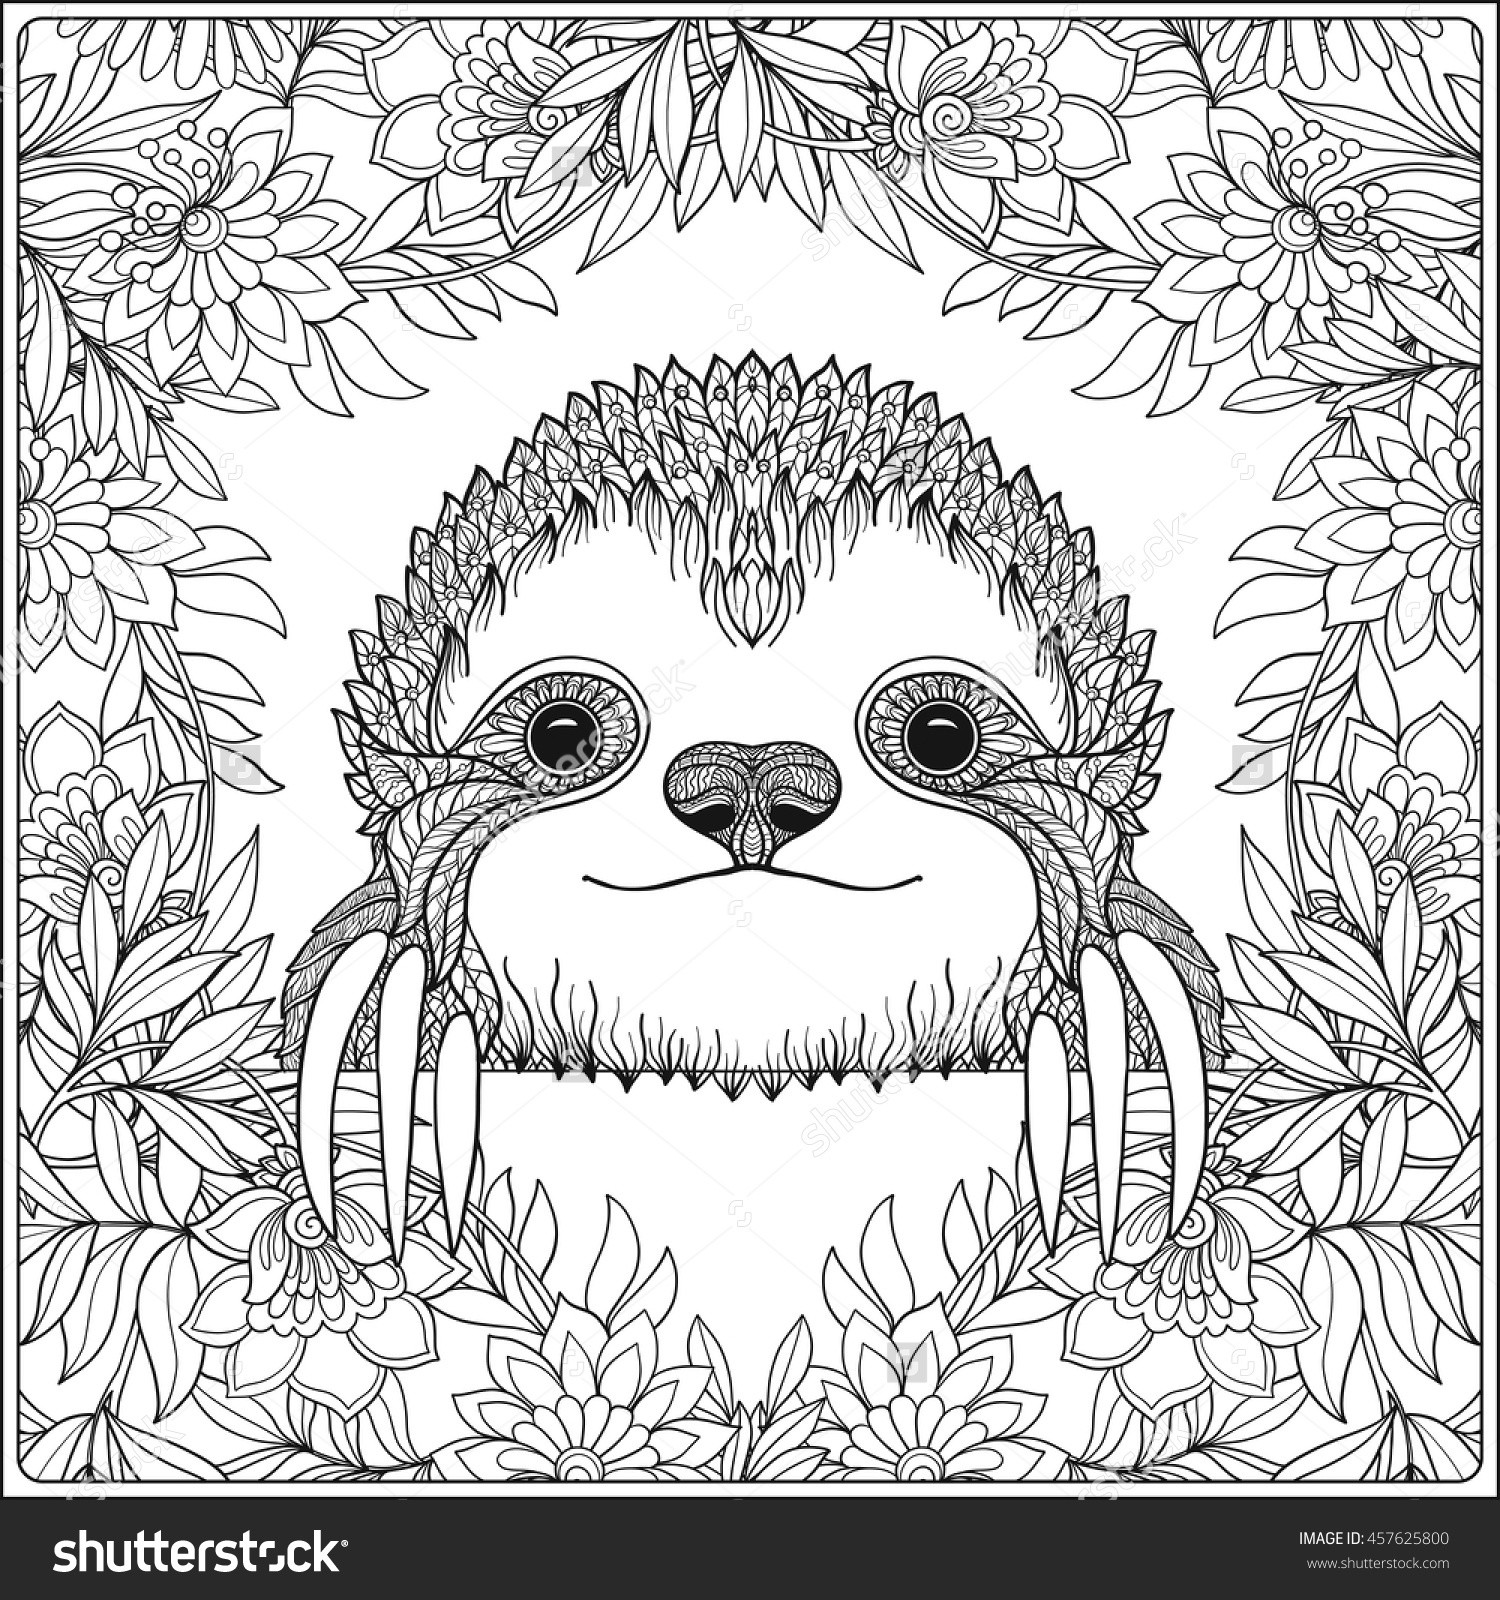 sloth pictures to print sloth coloring pages for kids free printable coloring print pictures sloth to